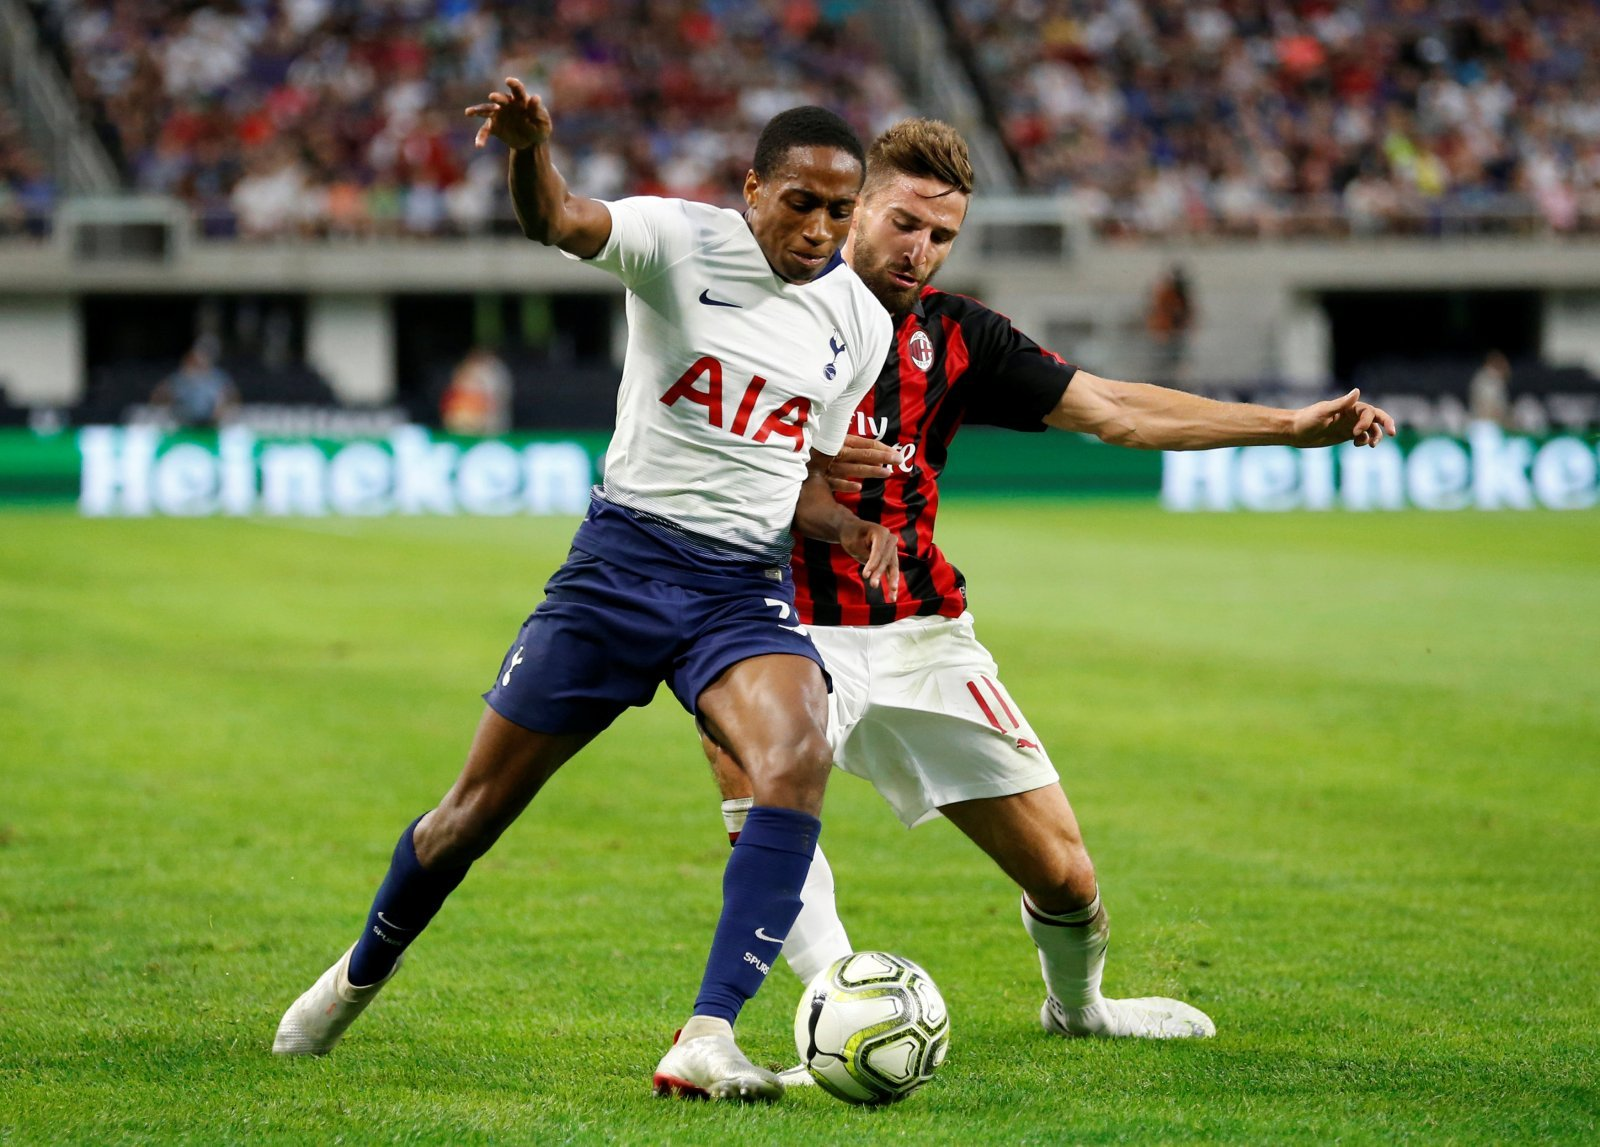 Kyle Walker-Peters will play a big role in Tottenham's new stadium